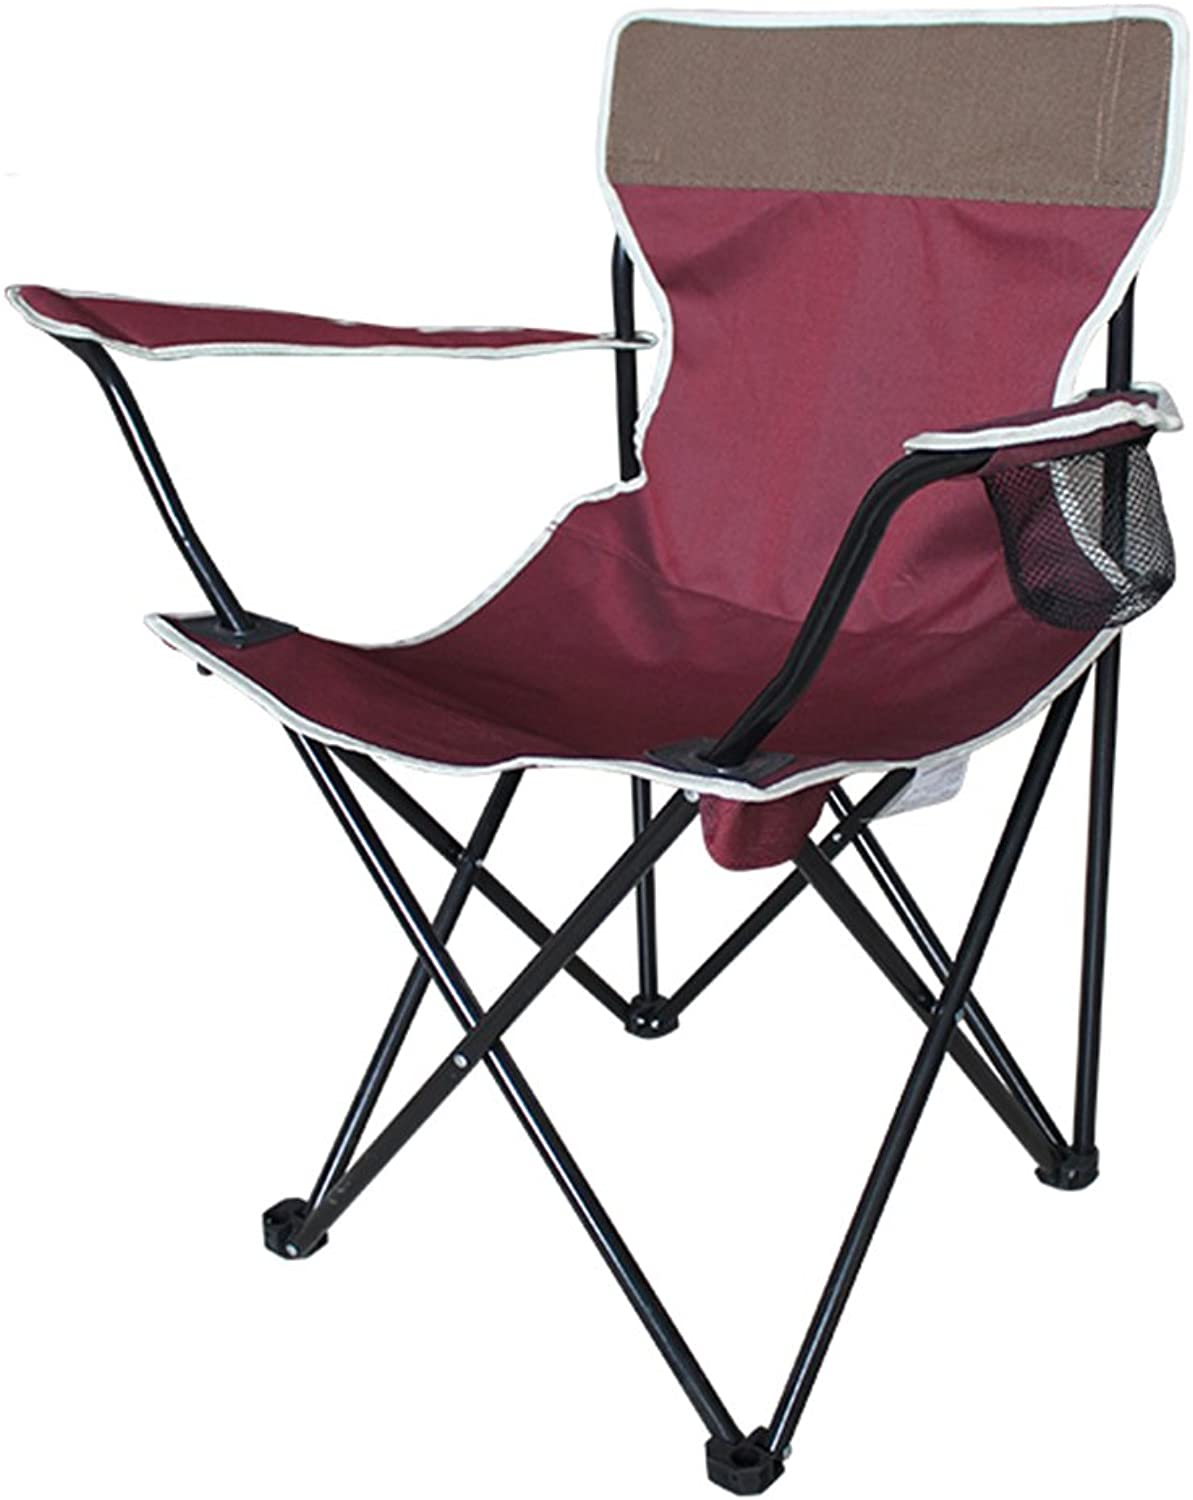 XRXY Simple Lightweight Garden Folding Chair Outdoor Portable Multifunction Beach Chair Balcony Leisure Backrest Chair Camping Barbecue Fishing Chair